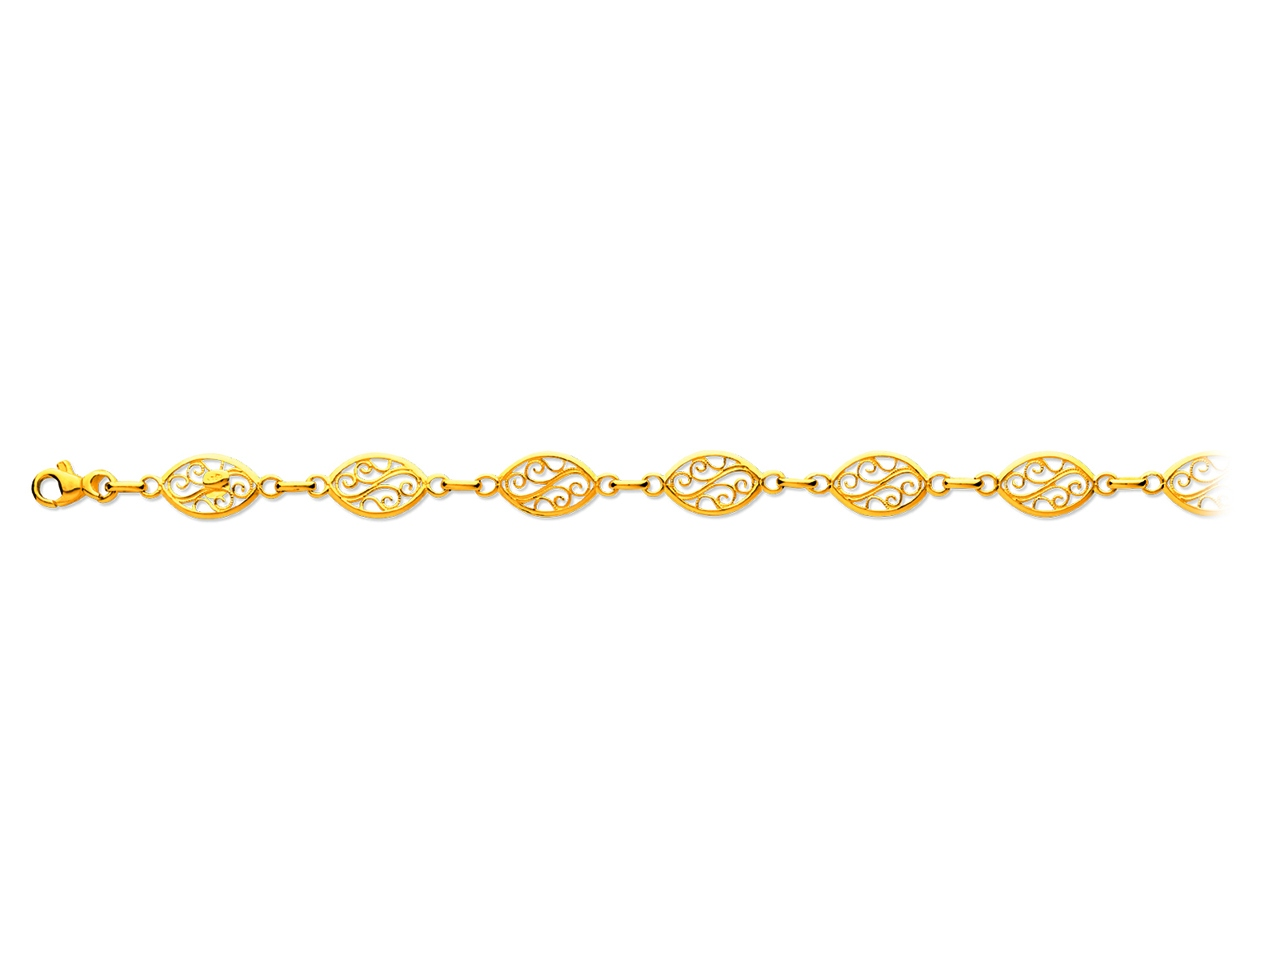 Bracelet maille filigrane 8 mm, 19 cm, Or jaune 18k